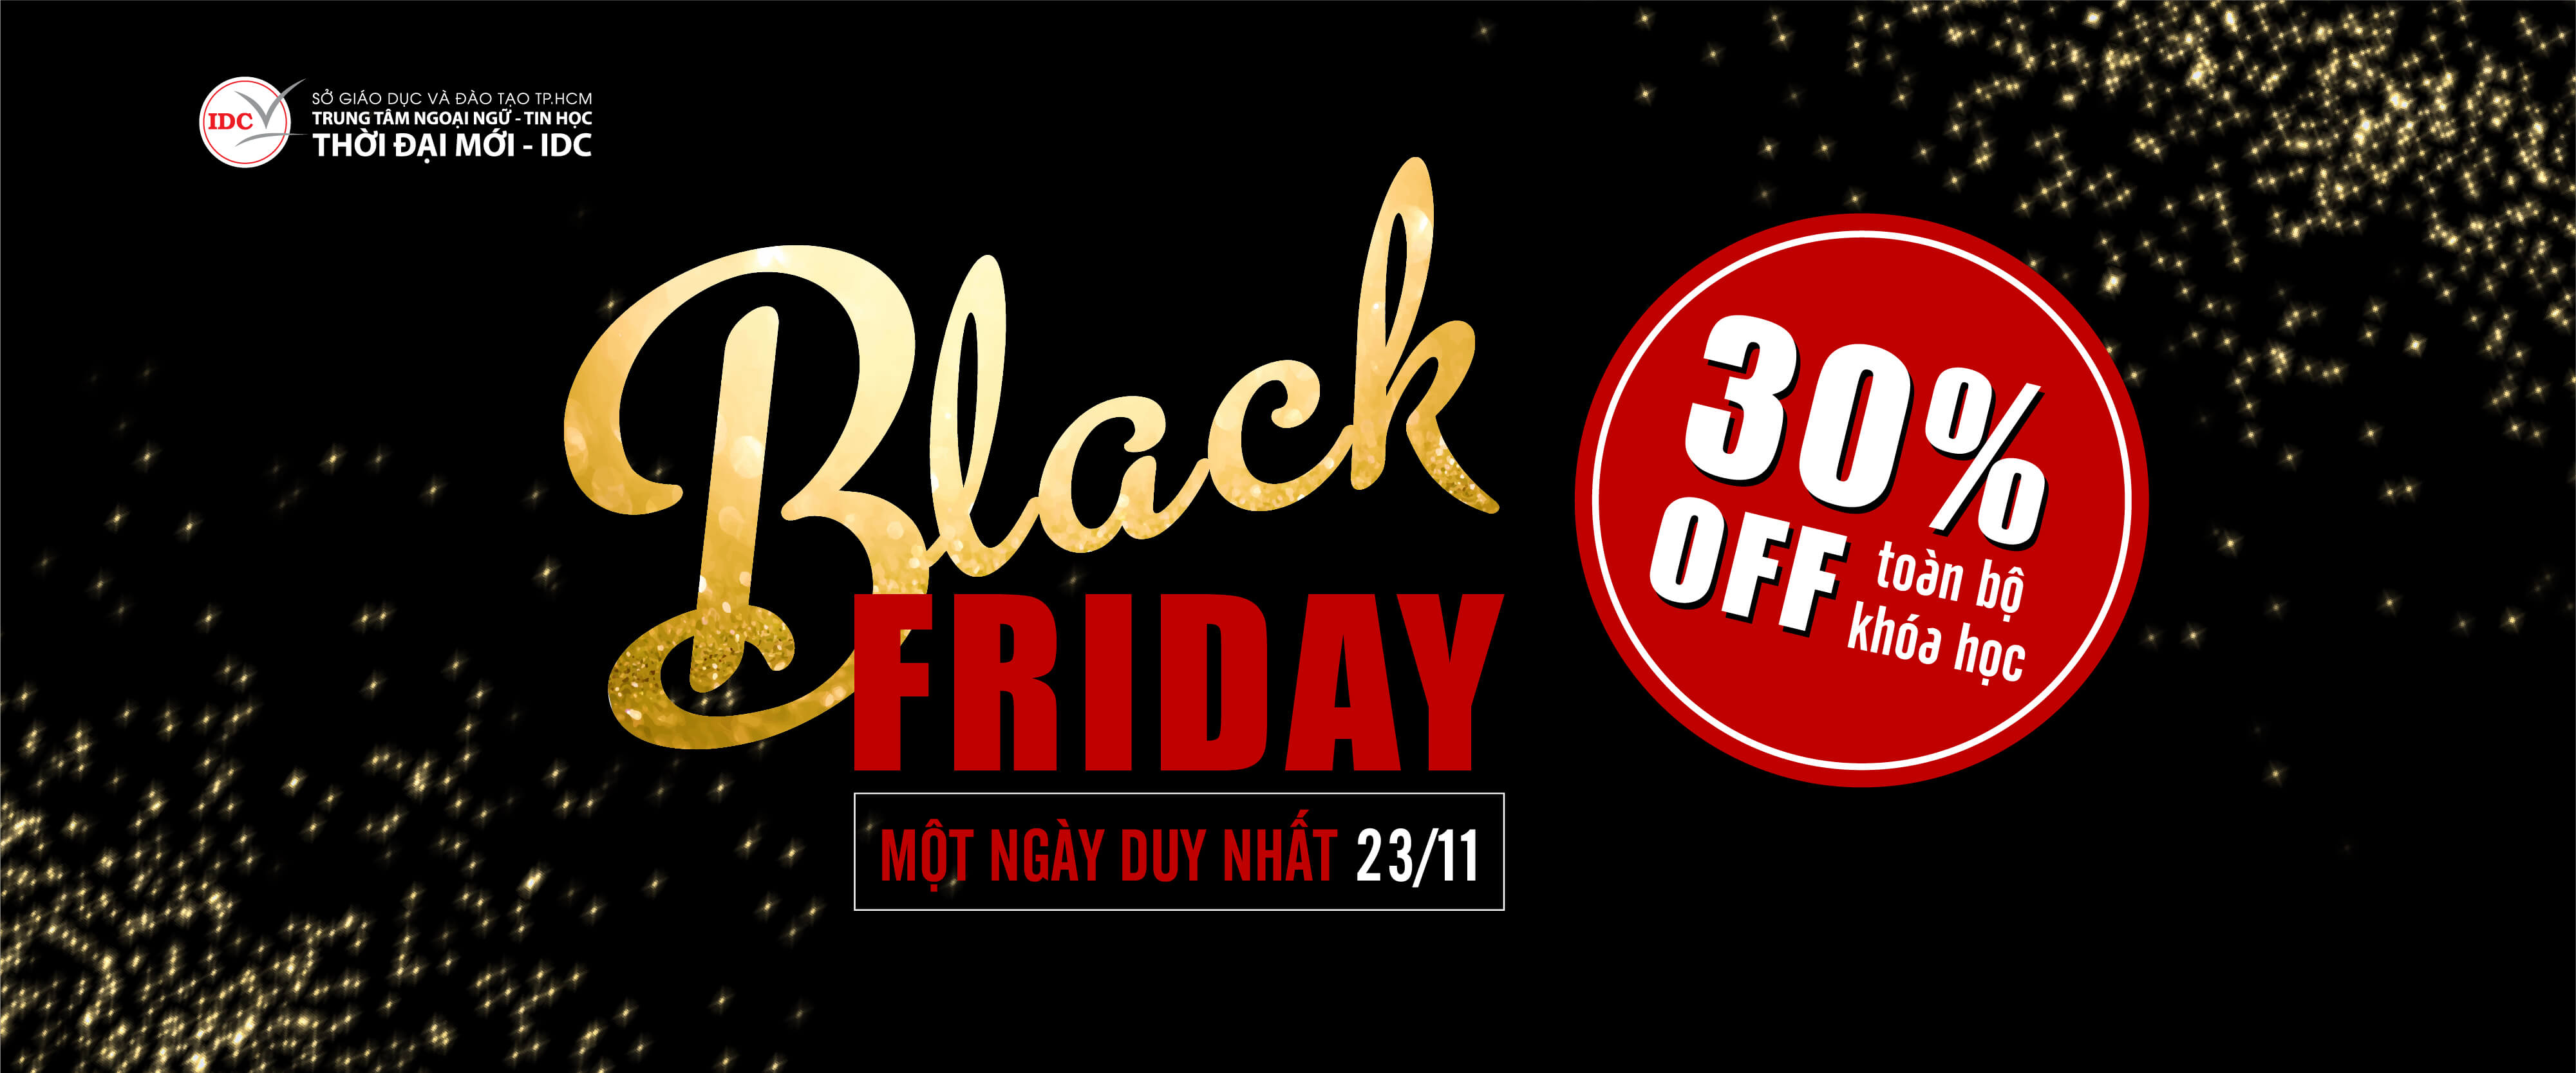 Banner BLACK FRIDAY 2018